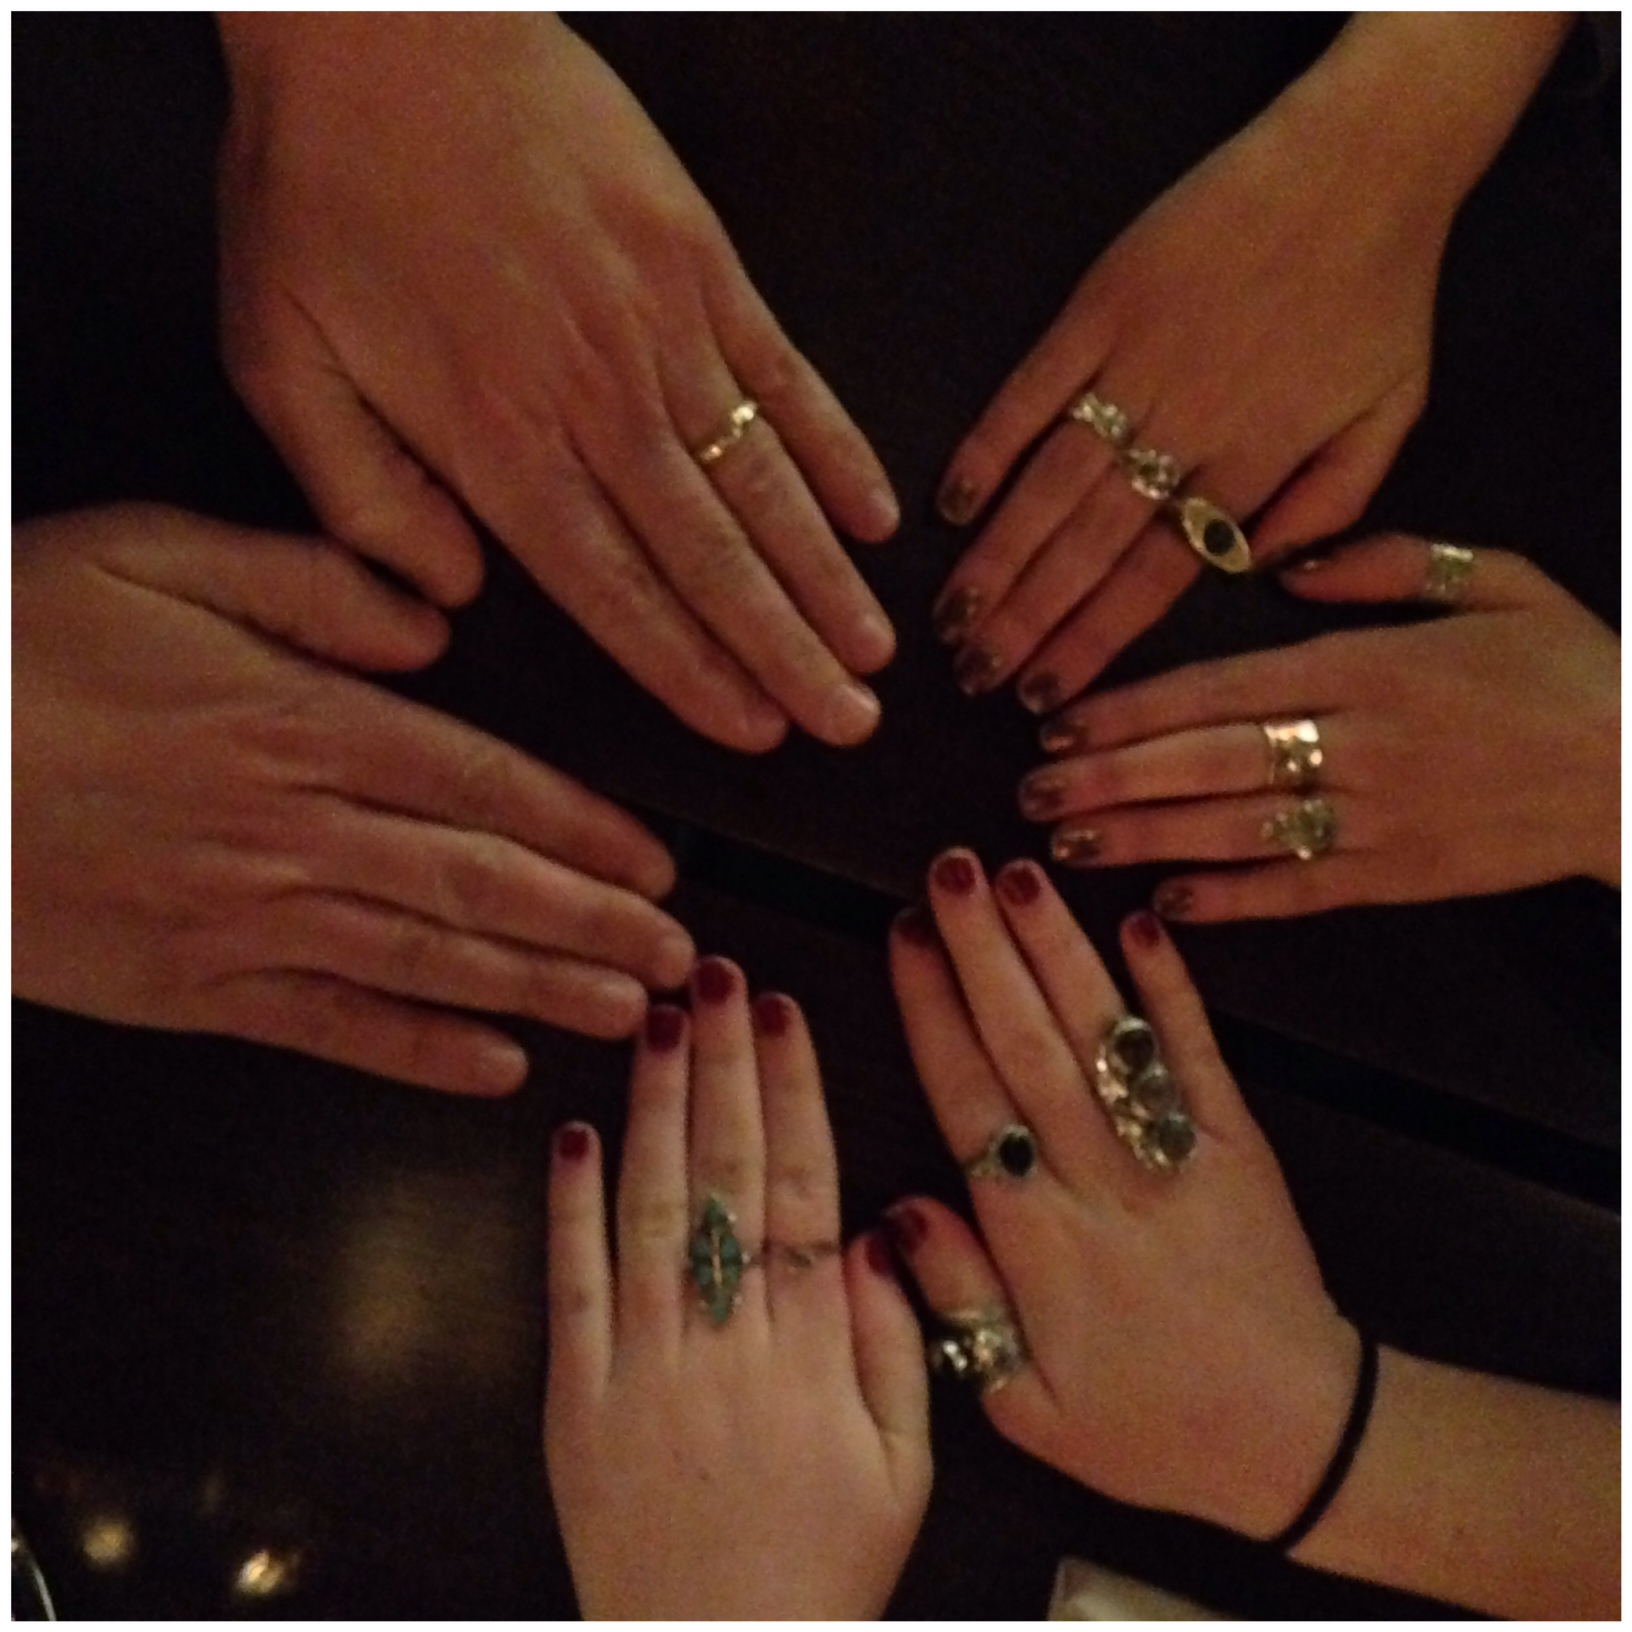 Teens girls wear lots of rings.